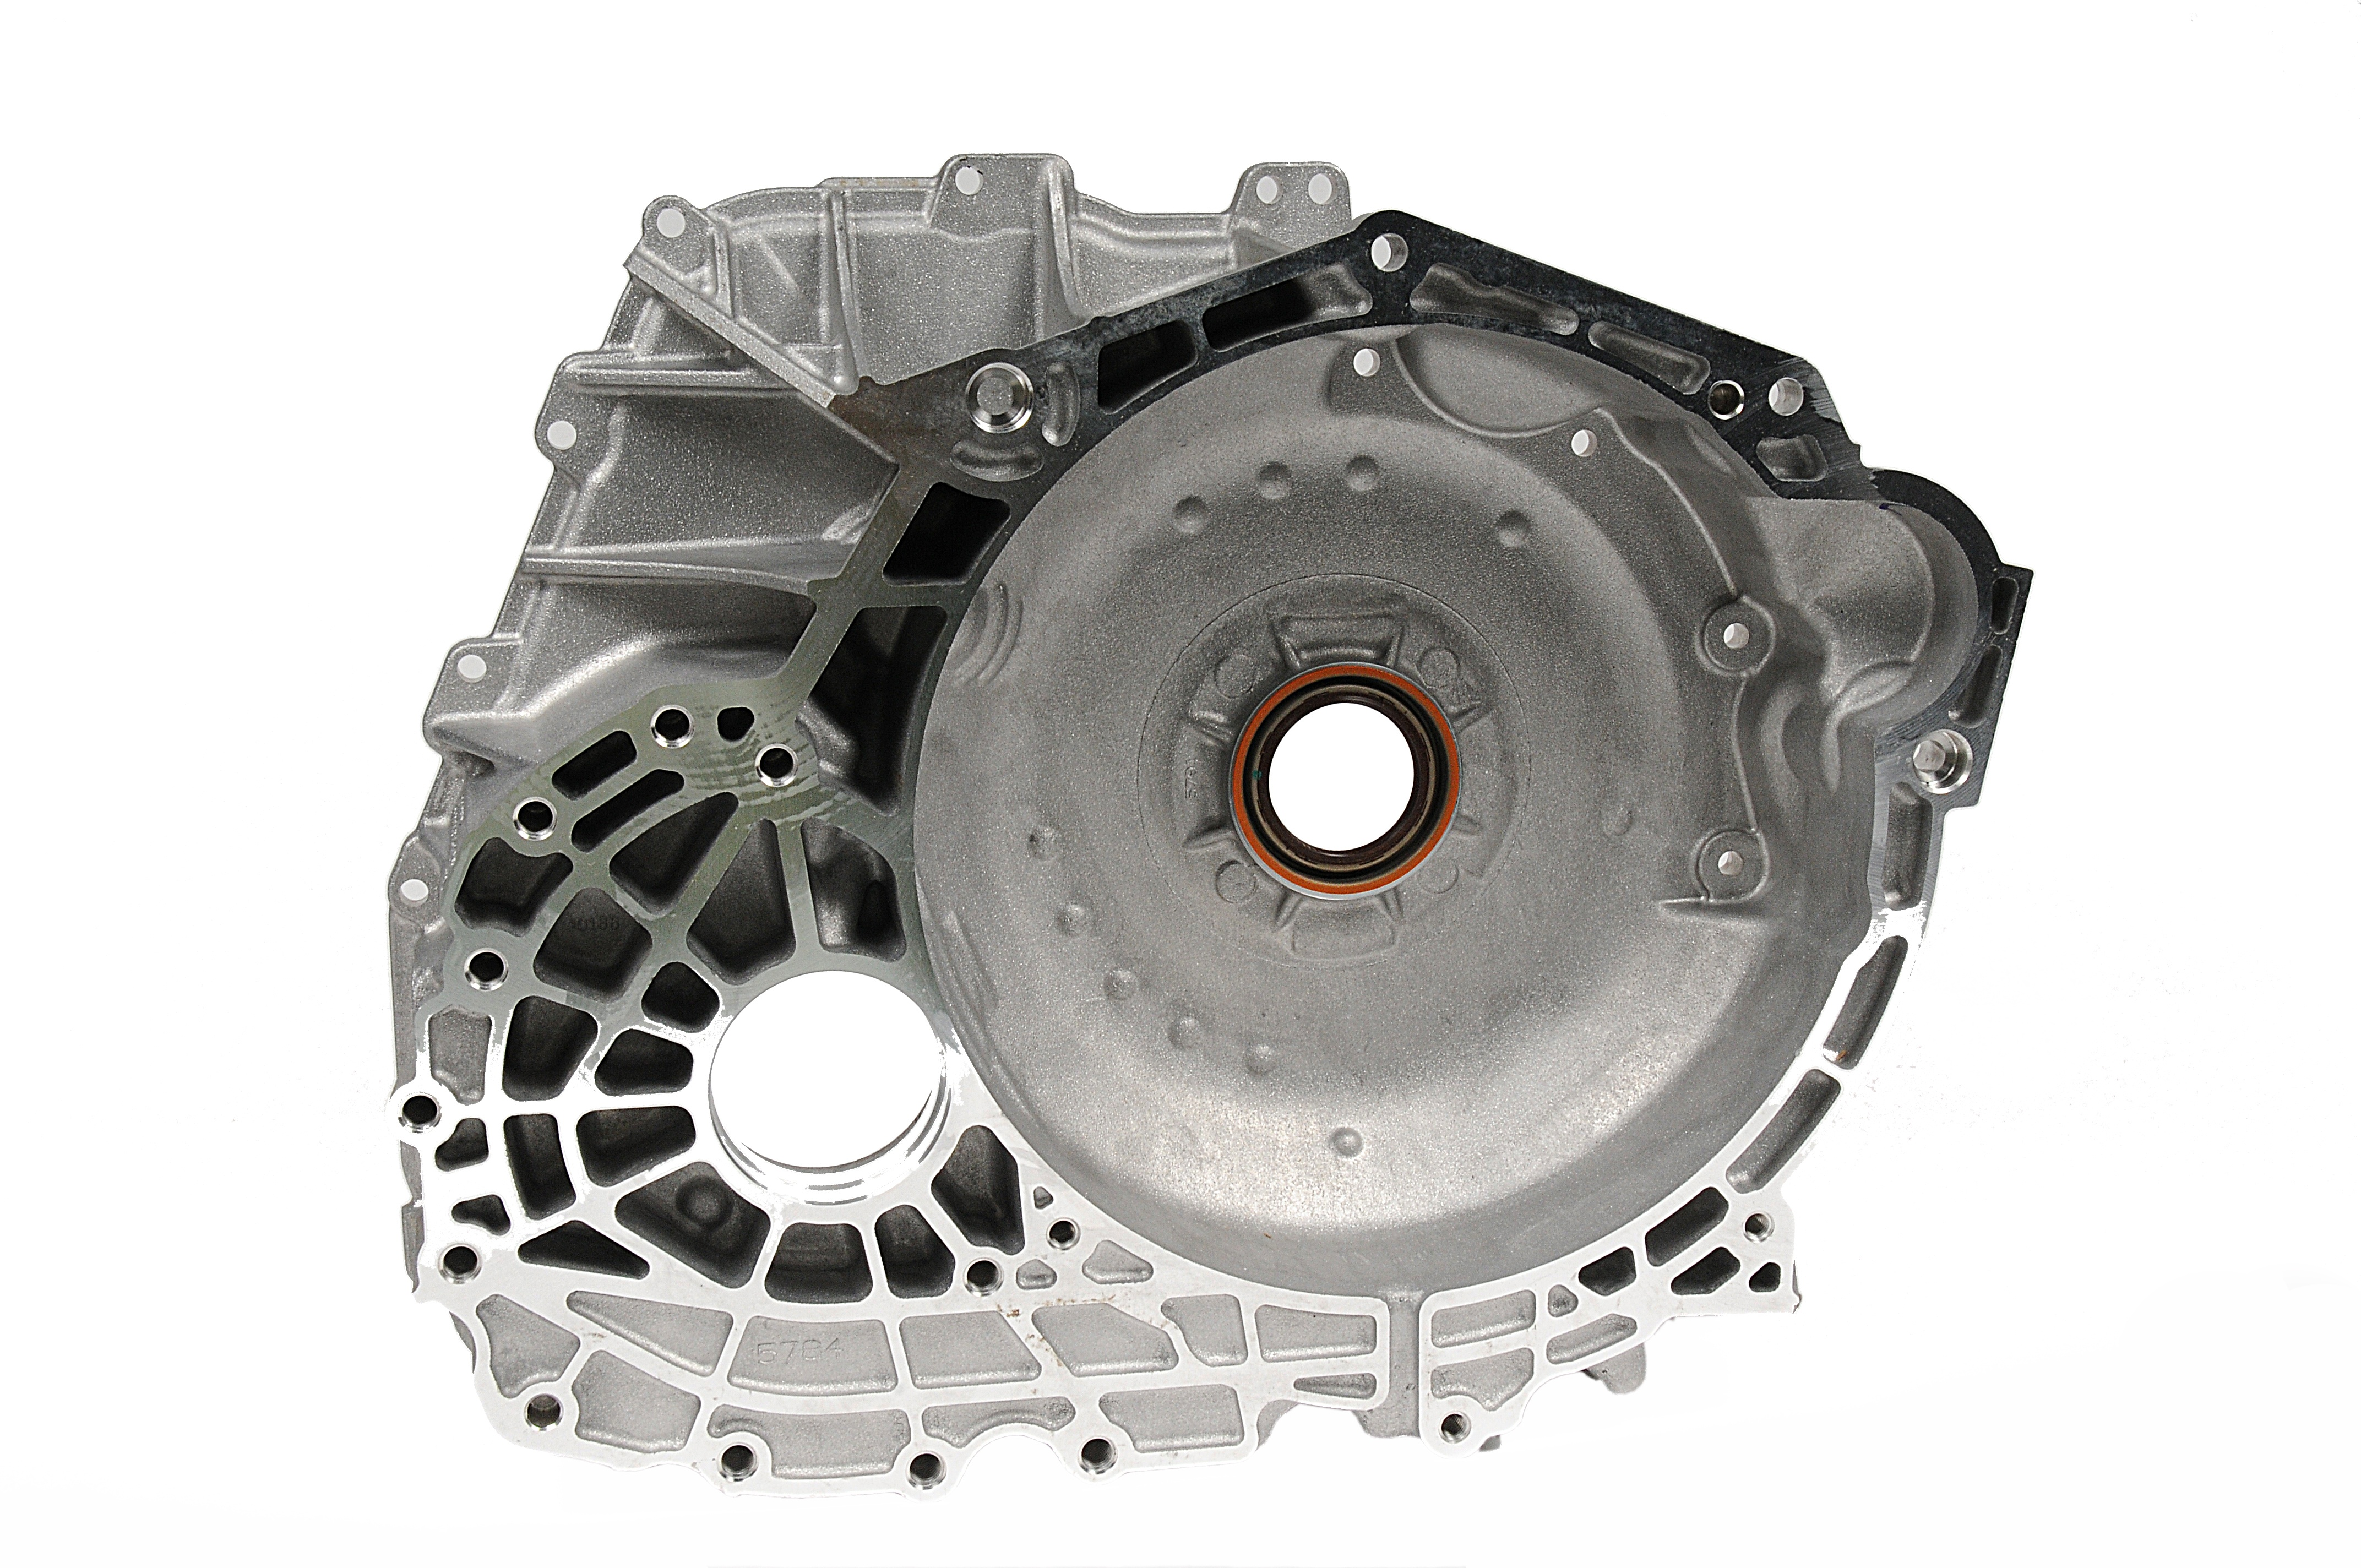 ACDELCO GM ORIGINAL EQUIPMENT - Automatic Transmission Torque Converter and Differential Housing - DCB 24251539